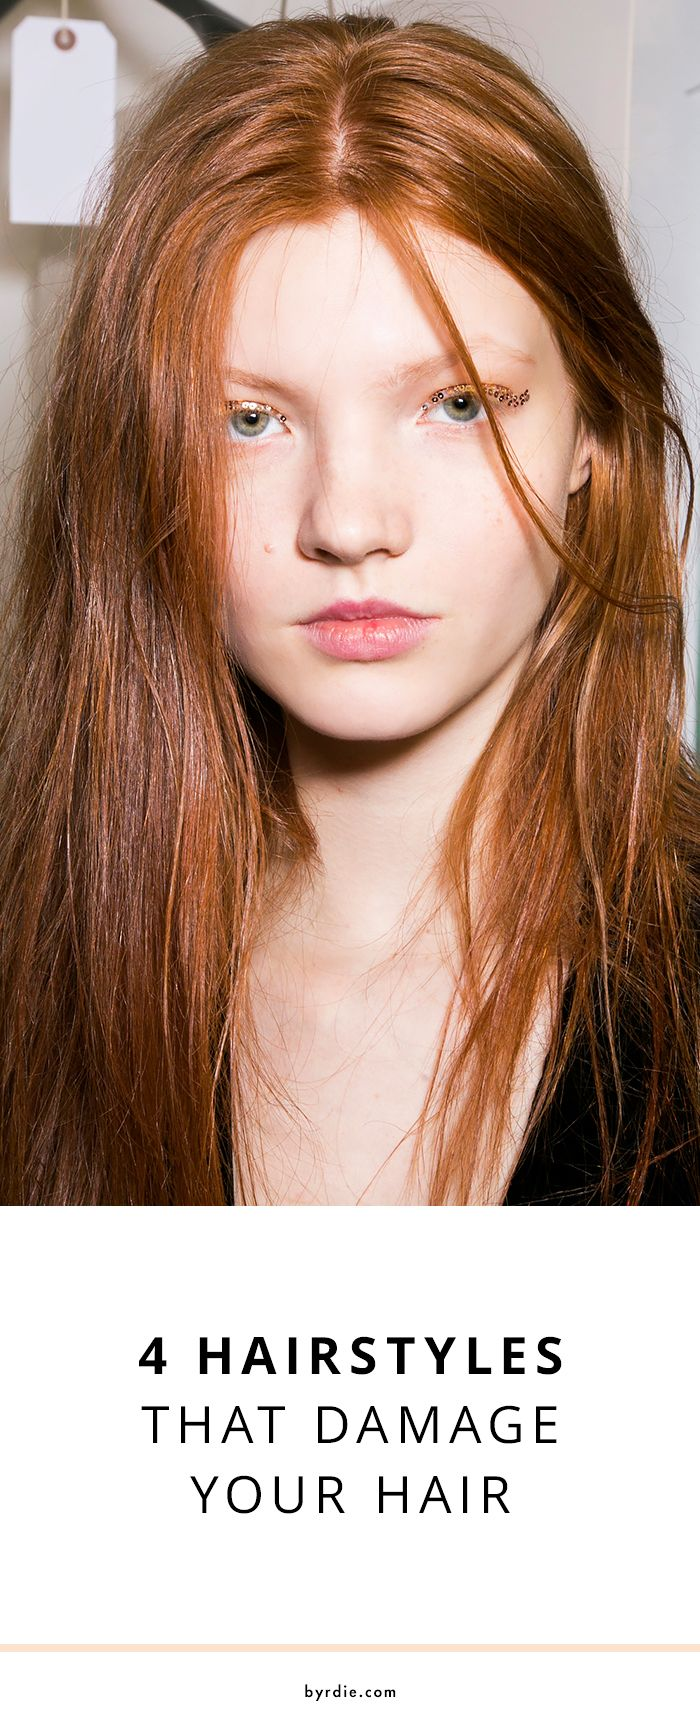 4 hairstyles that are actually damaging your hair